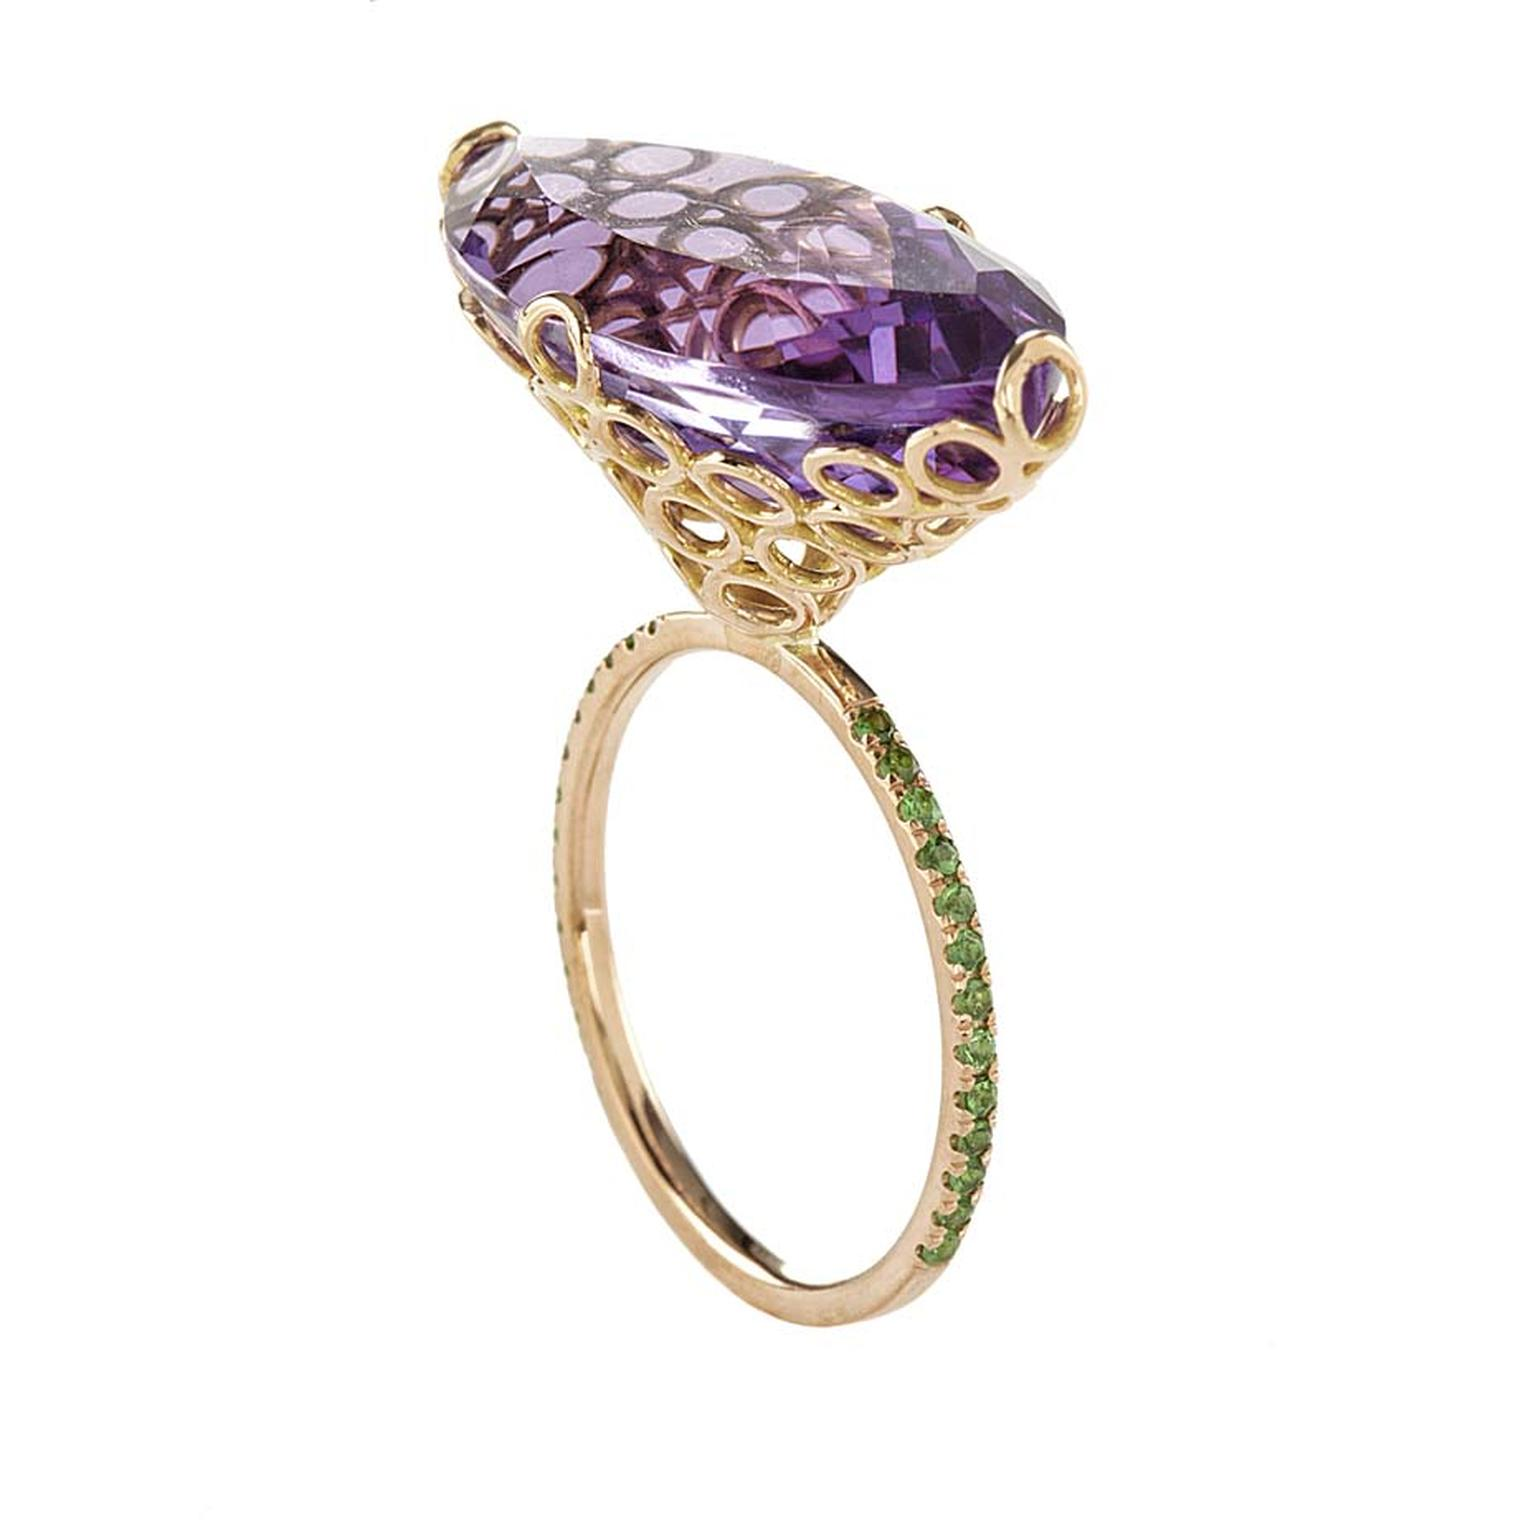 Lito pink gold ring with a 14.5ct marquise-cut amethyst and brilliant-cut tsavorites